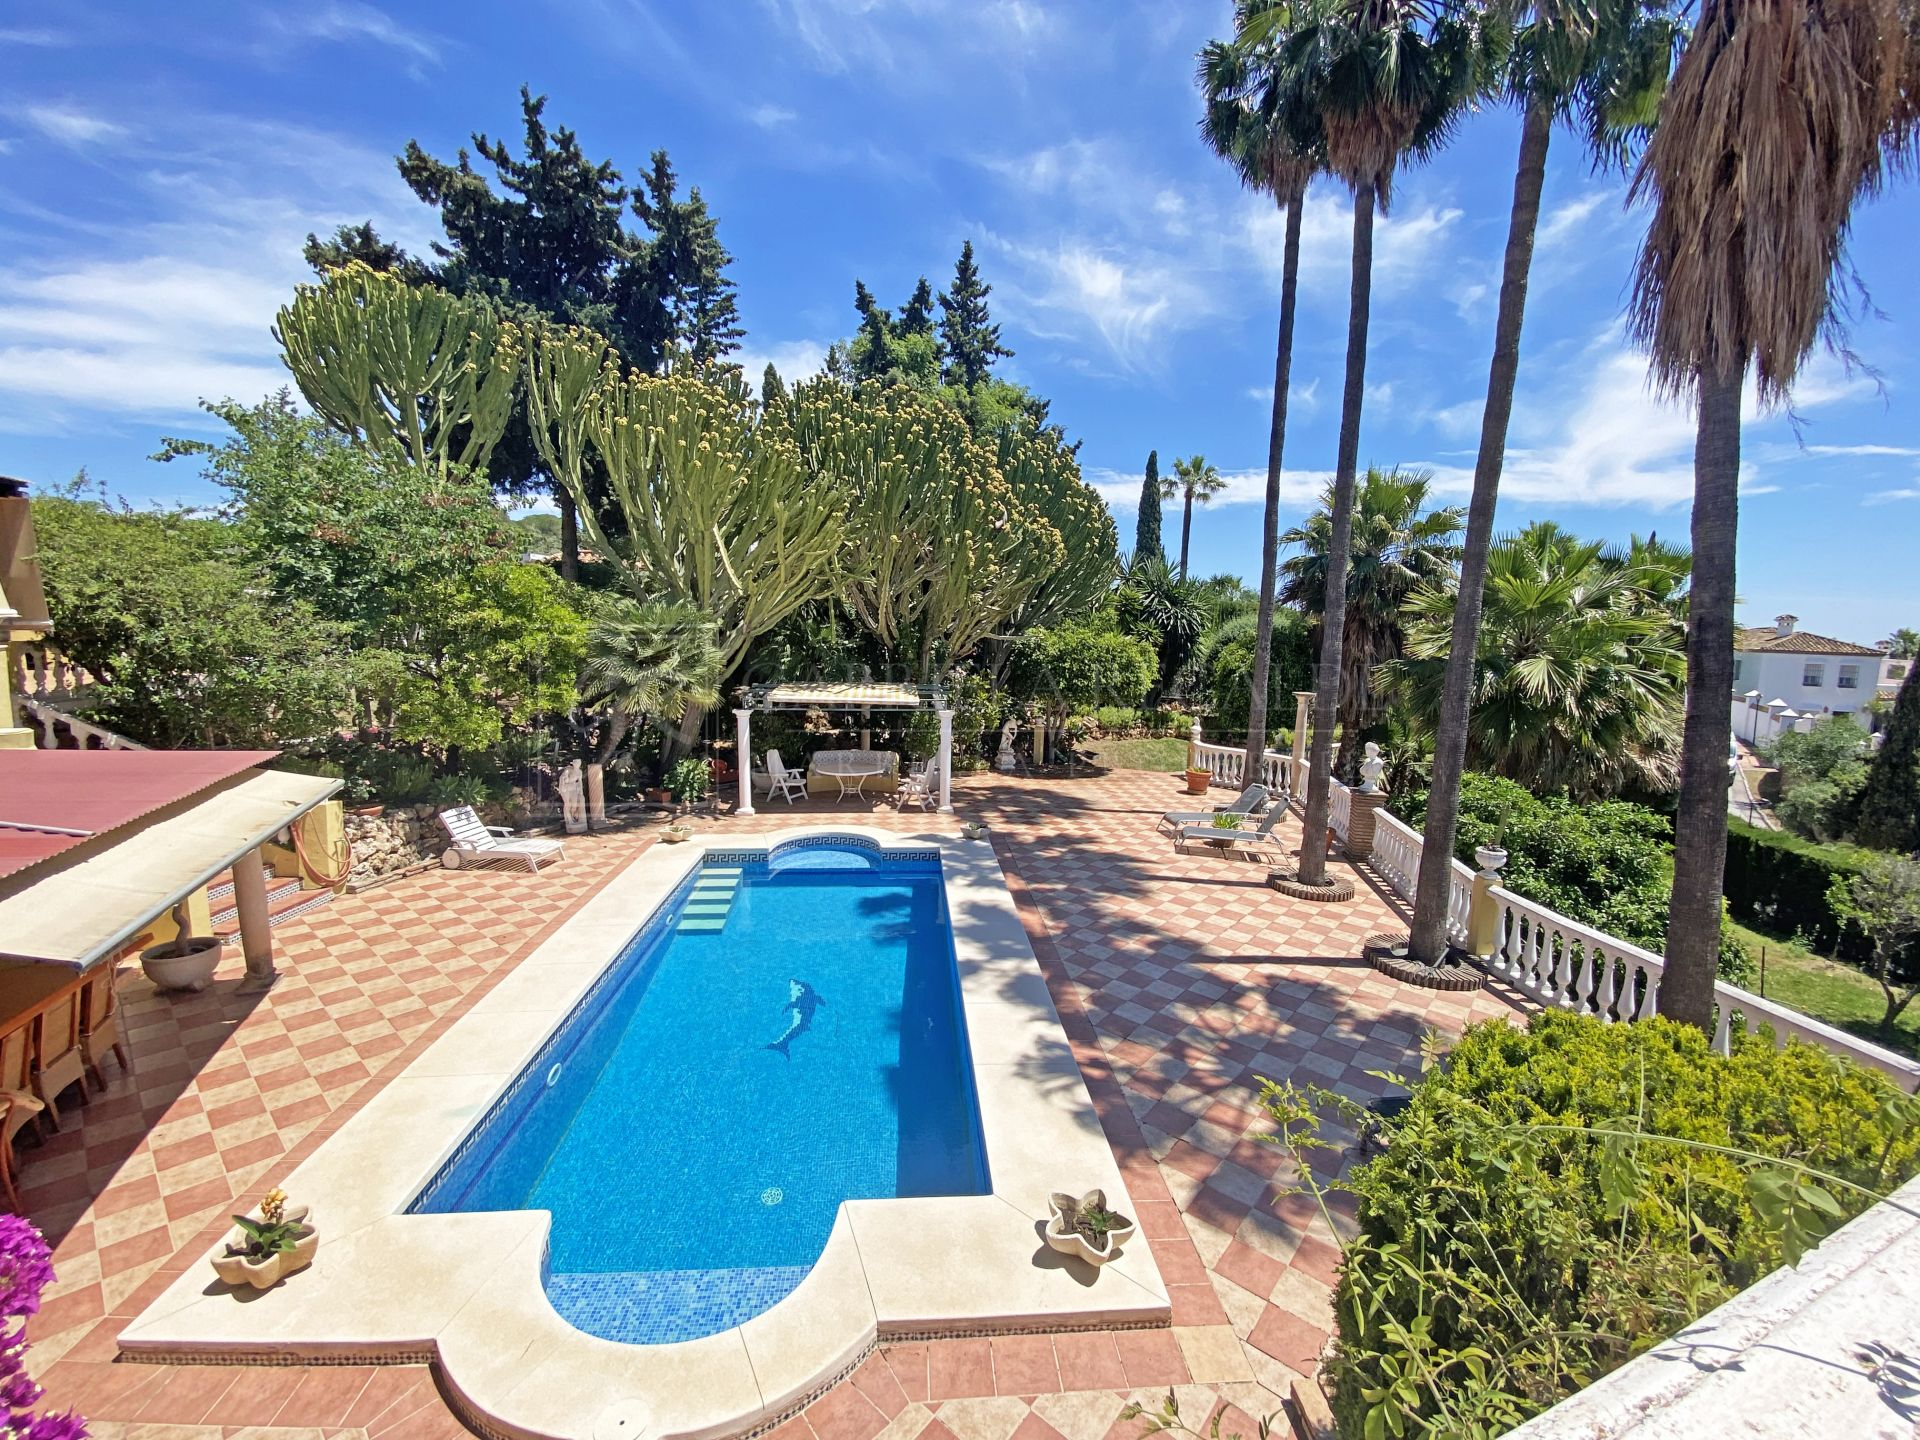 Four-Bedroom Family Villa with Spacious and Lush Gardens